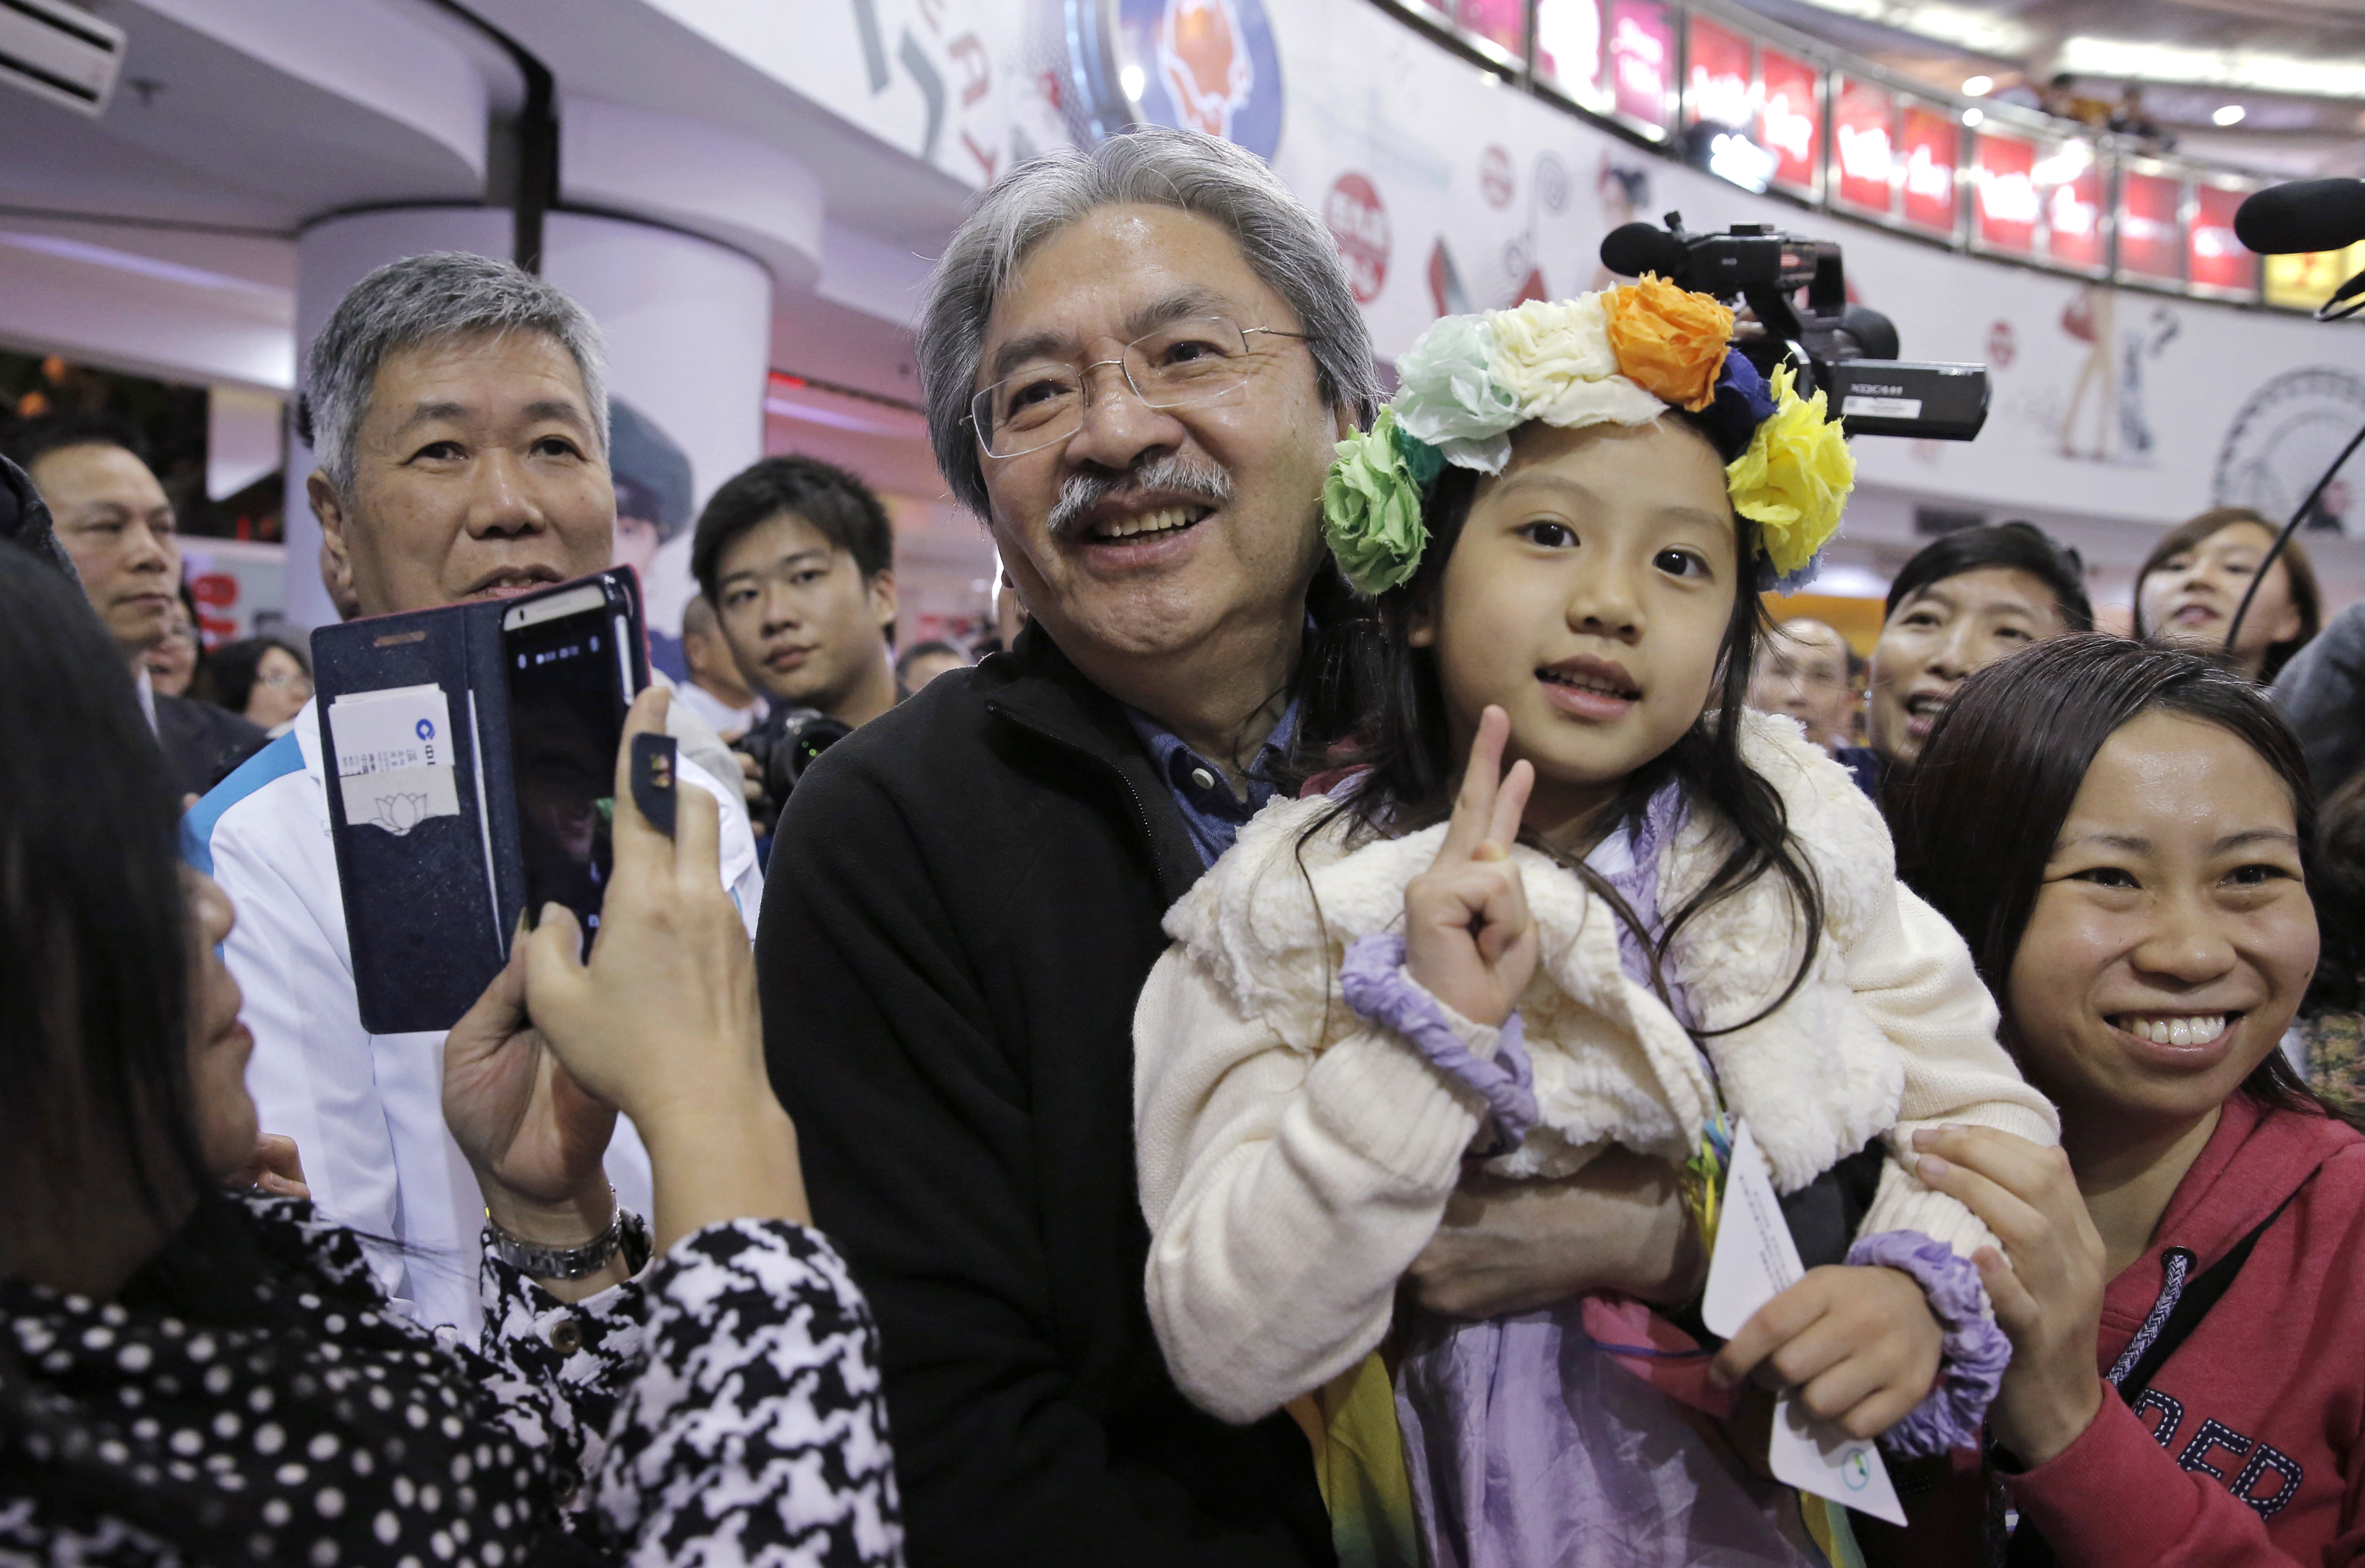 Chief Executive candidate, Hong Kong's former Financial Secretary John Tsang, center, holds a child as he poses for a photograph with his supporters at an election campaign in Hong Kong on March 16, 2017